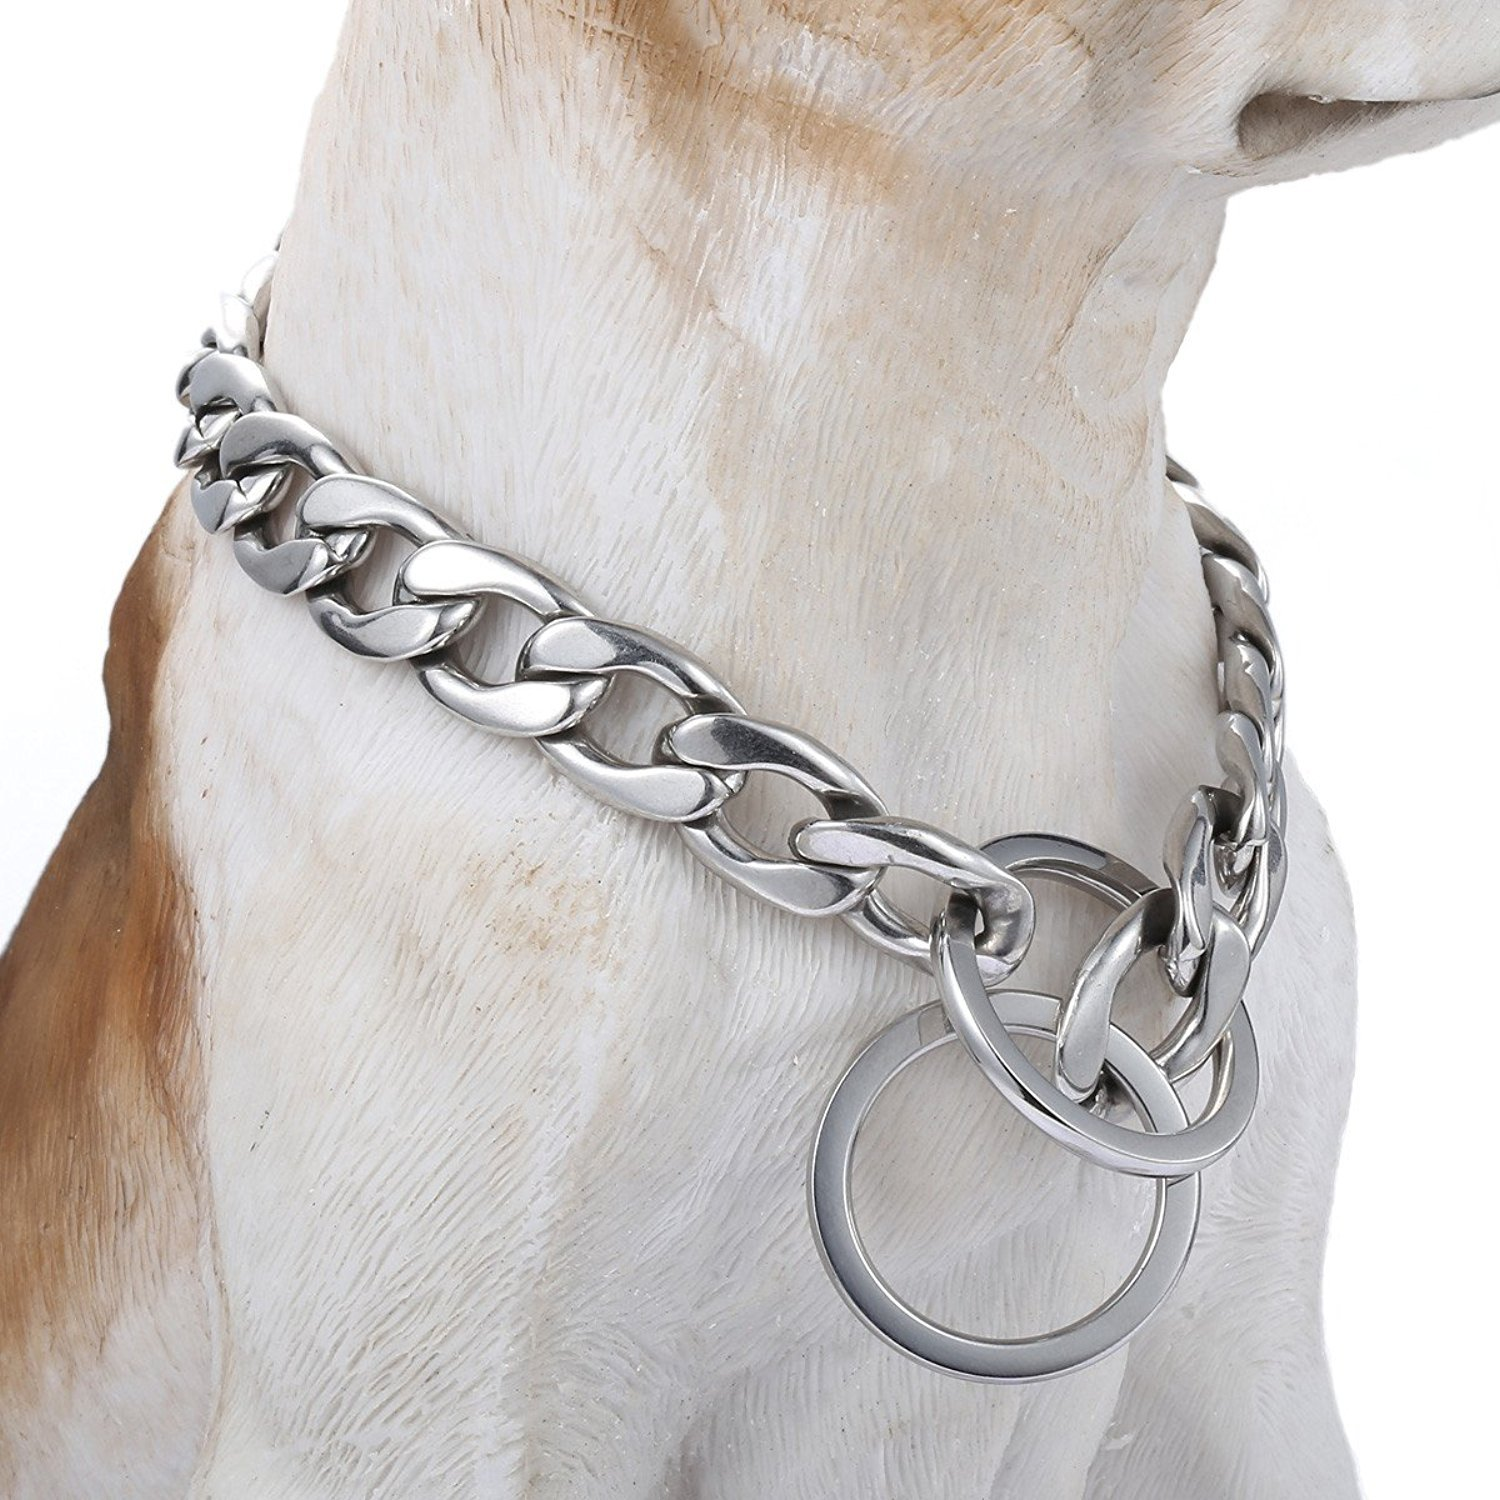 Trendsmax 13mm Silver Tone Curb Cuban Link 316L Stainless Steel Dog Choke Chain Collar 22inch